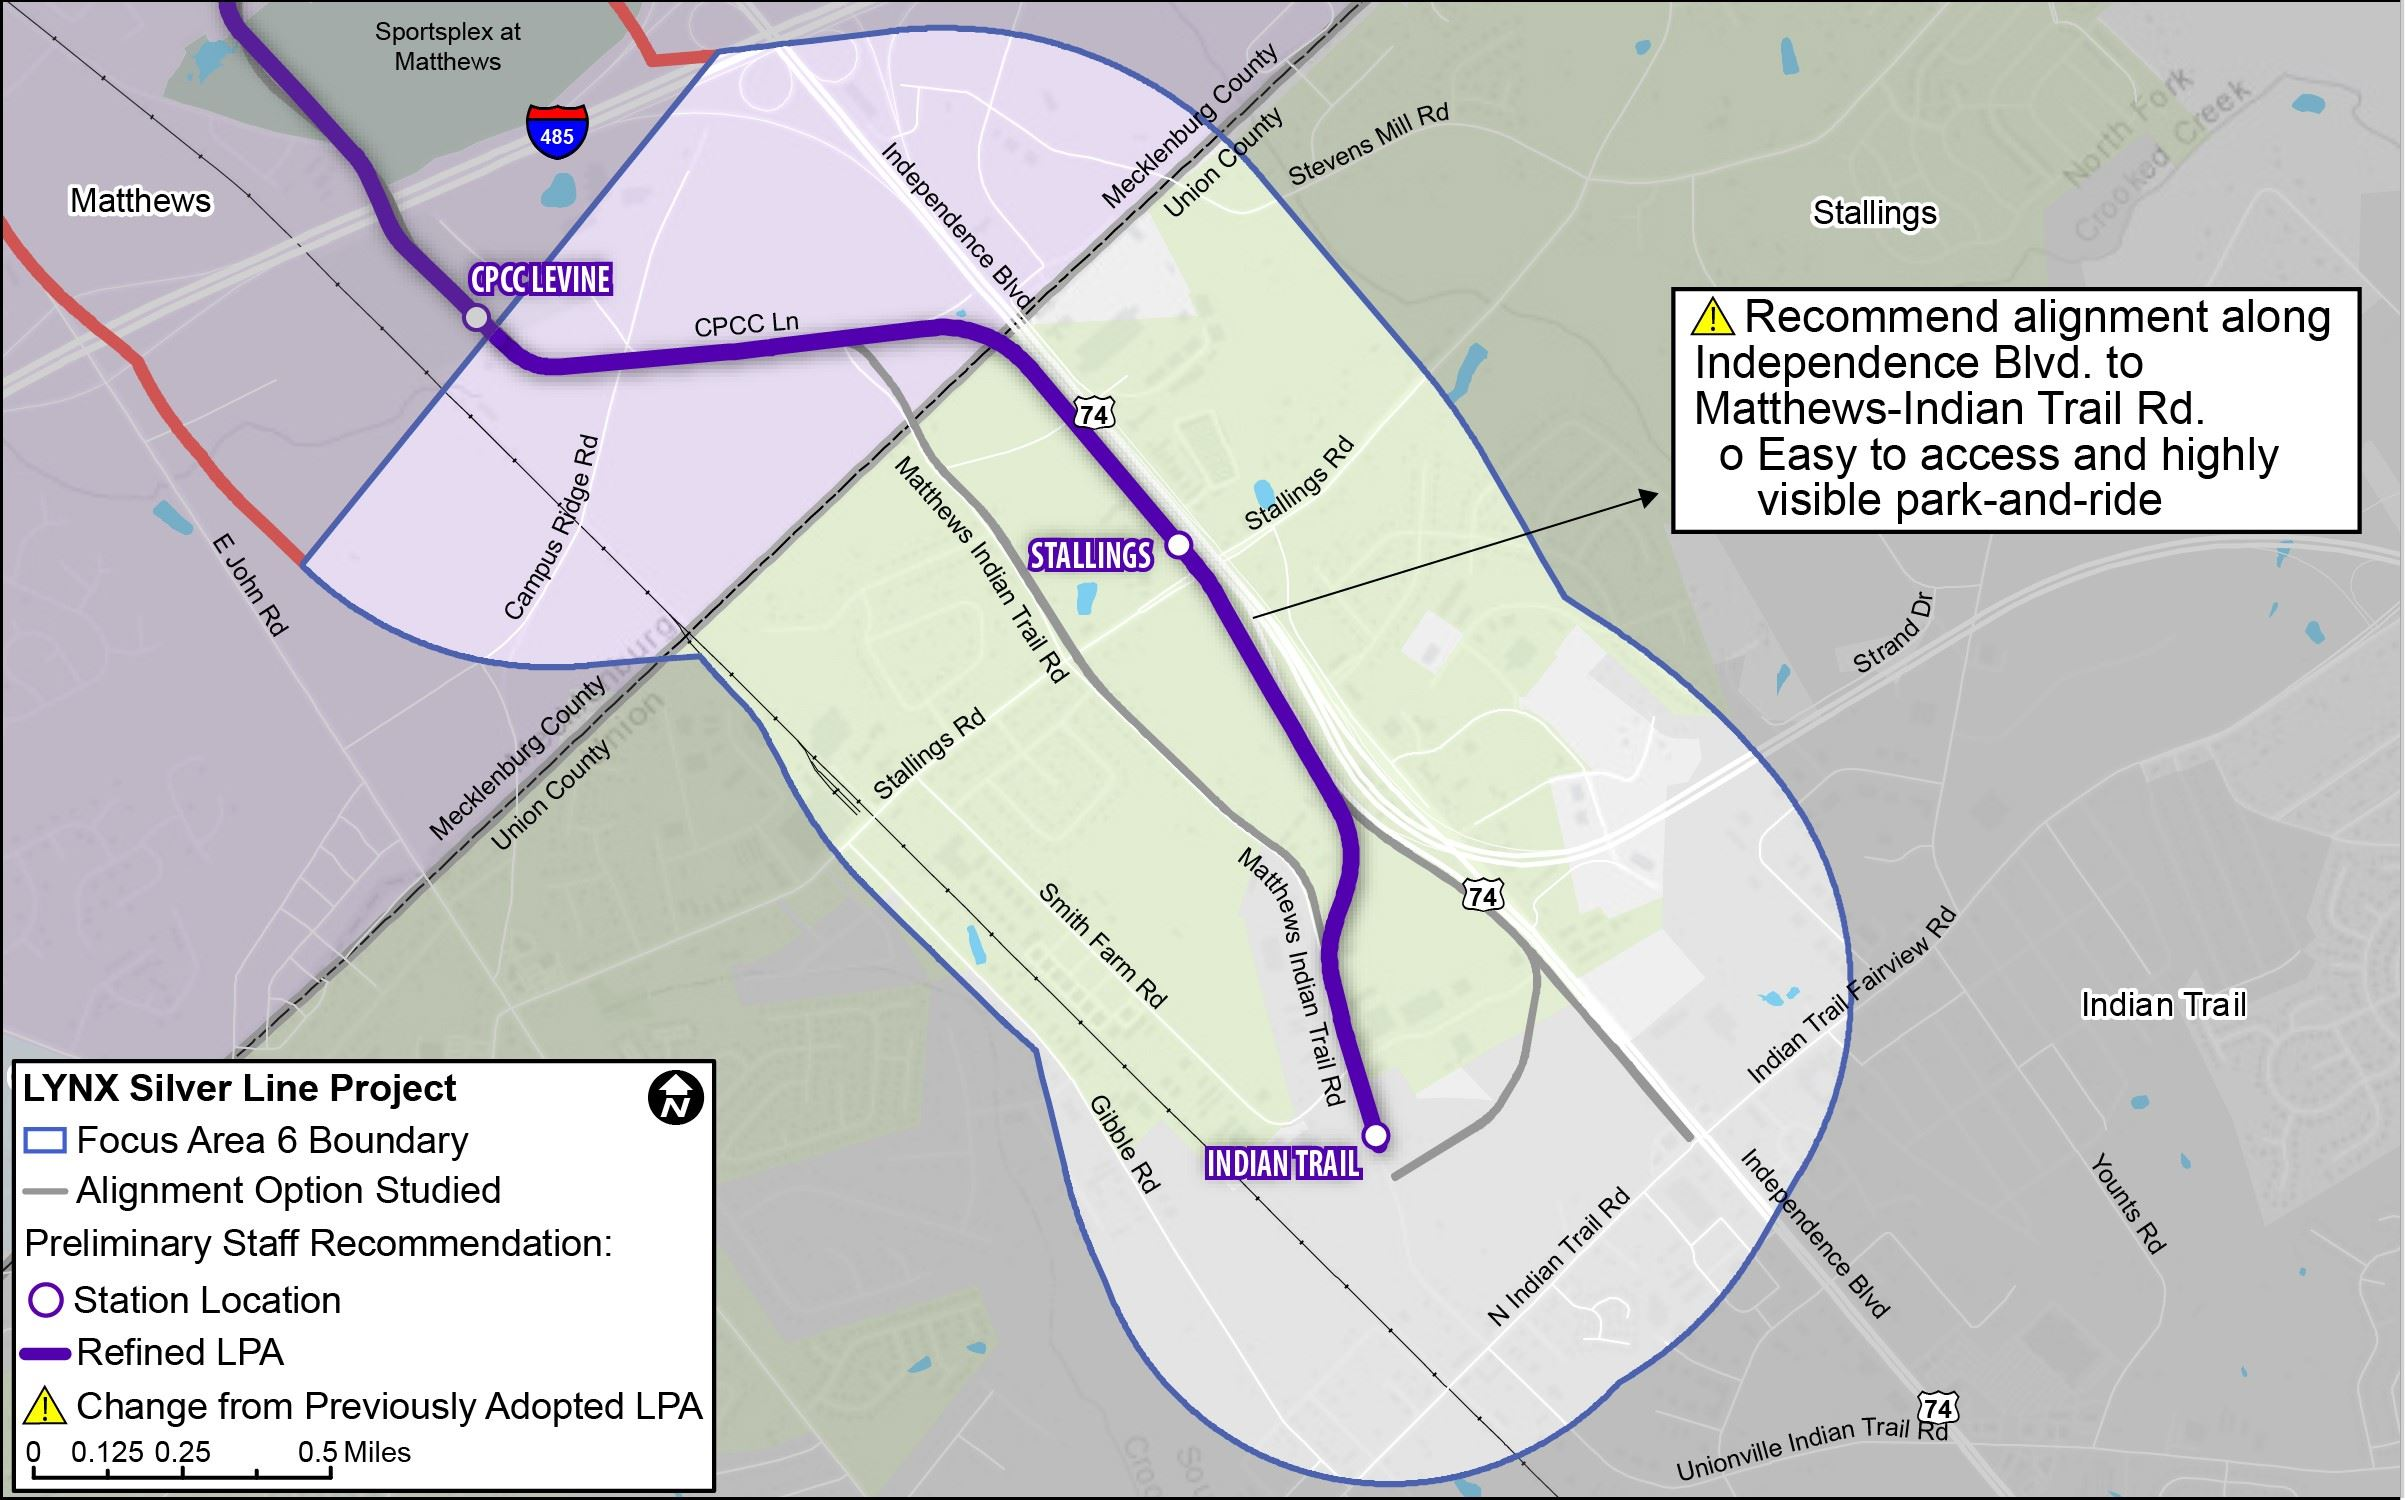 Map showing the Union County Extensions for the proposed LYNX Silver Line.